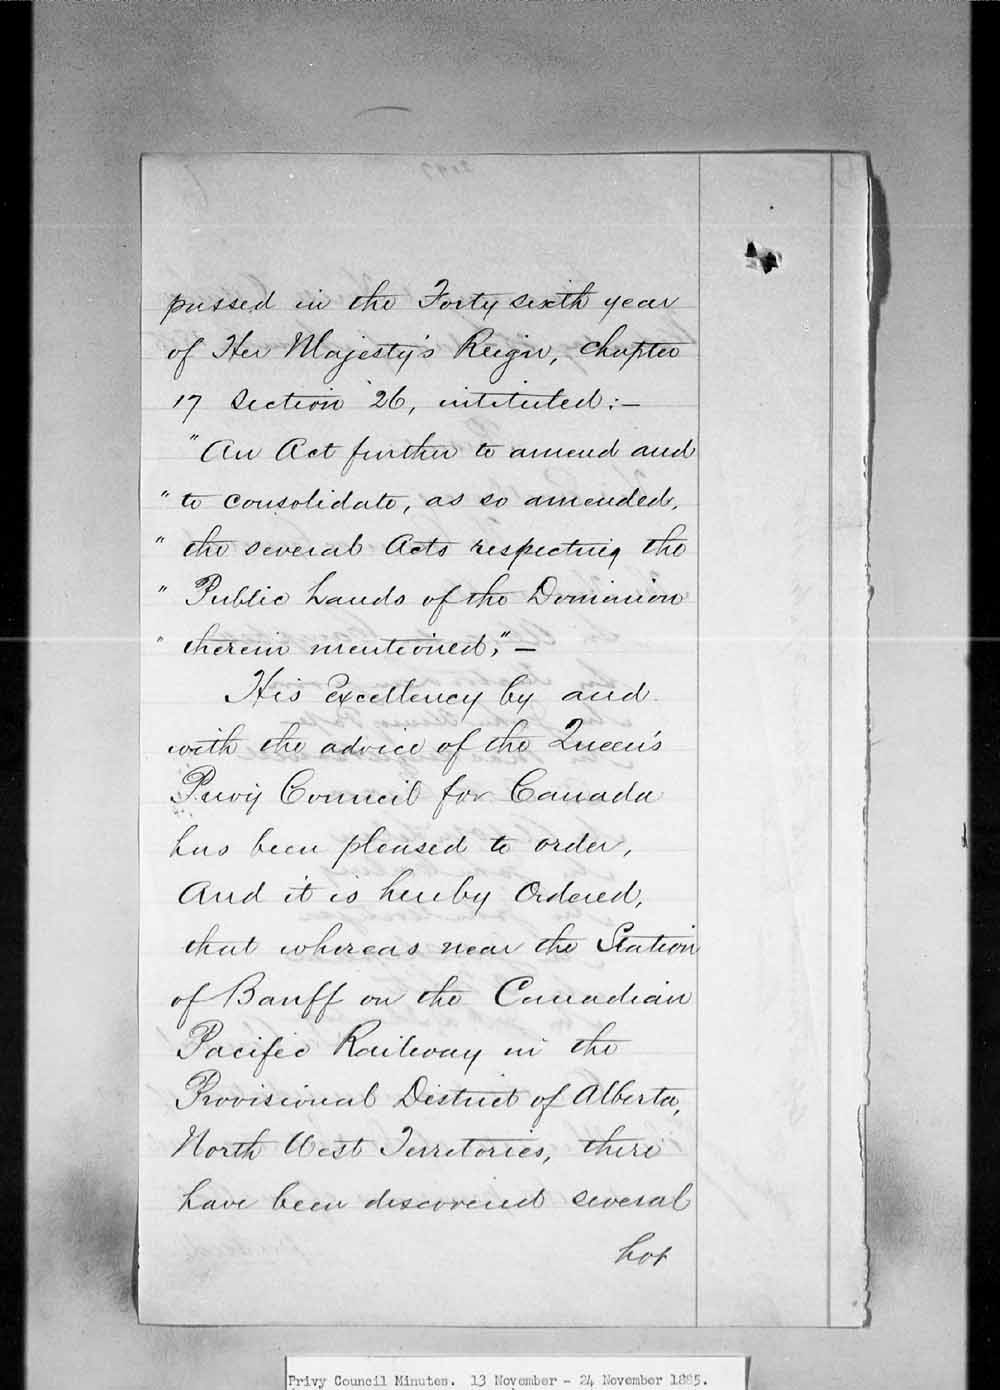 Digitized page of Orders in Council for Image No.: e002659154